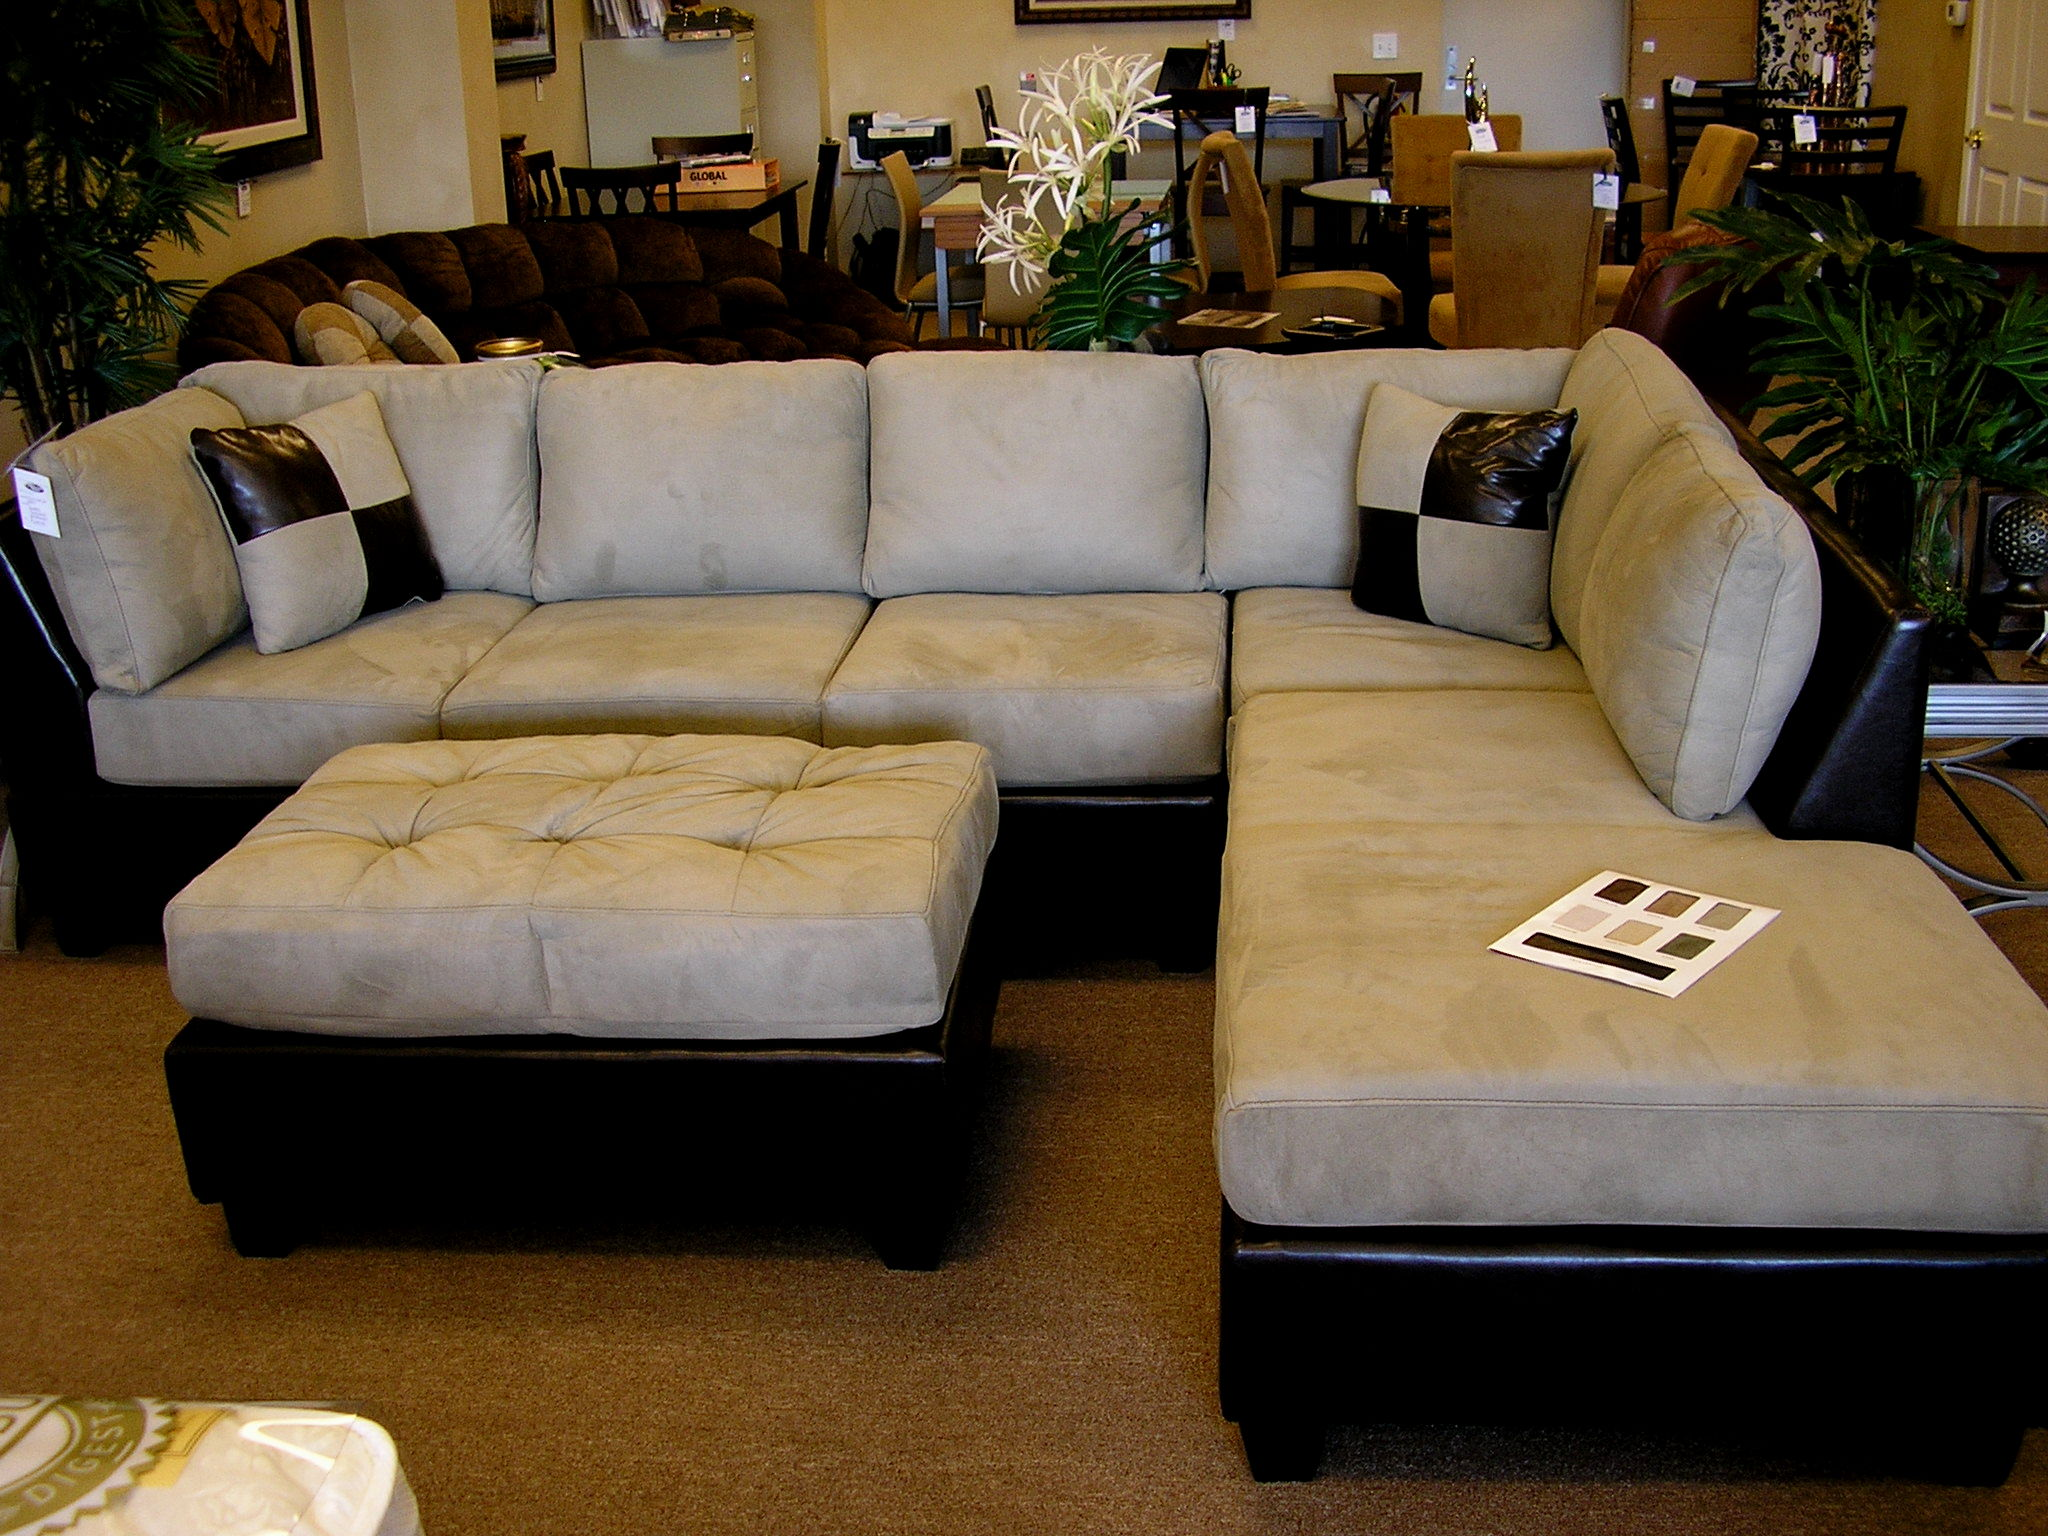 incredible apartment sized sofas collection-Latest Apartment Sized sofas Wallpaper